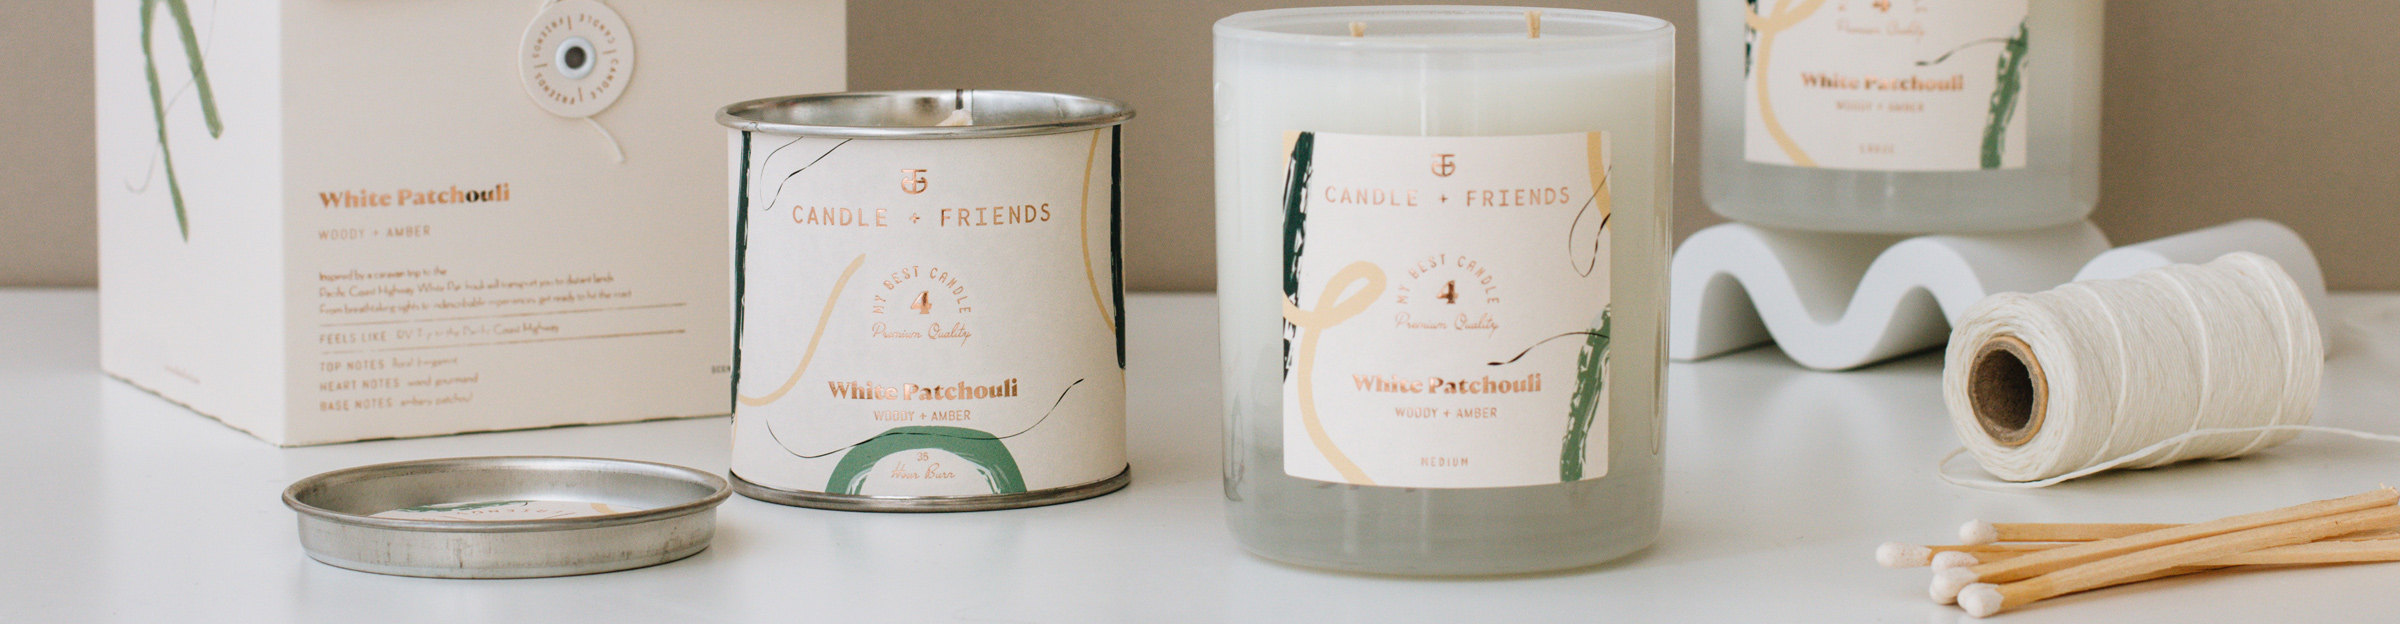 Candle and Friends